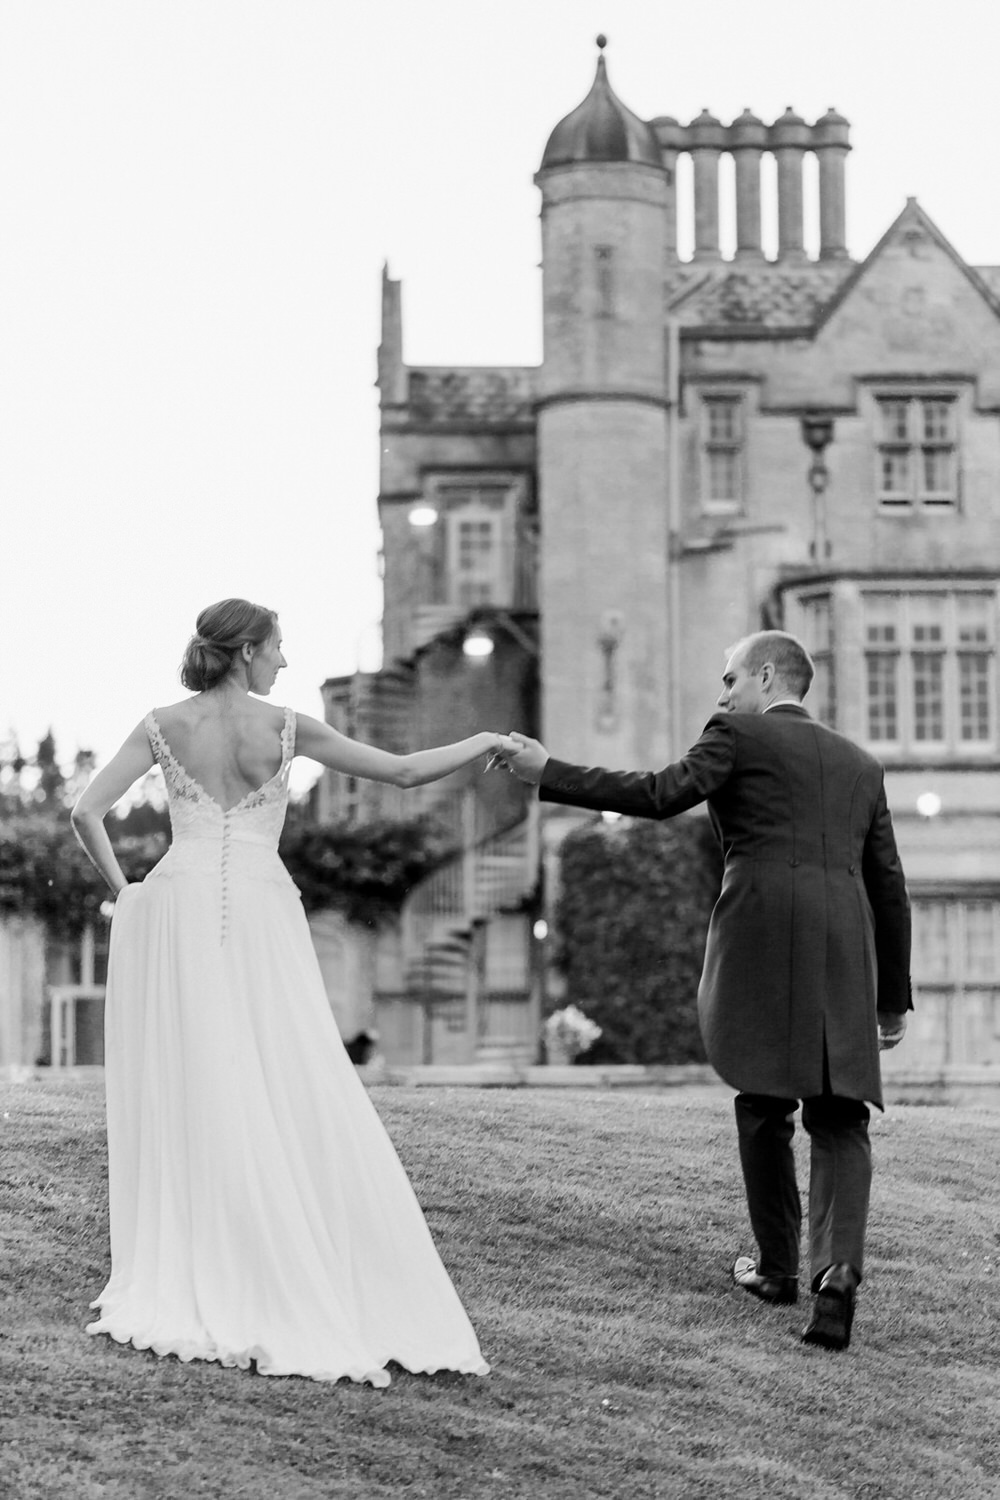 Special-Day-Photography-Dumbleton-Hall-hotel-Evensham-Black-and-white-couples-photography-Summer-wedding-in-Dumbleton.jpg